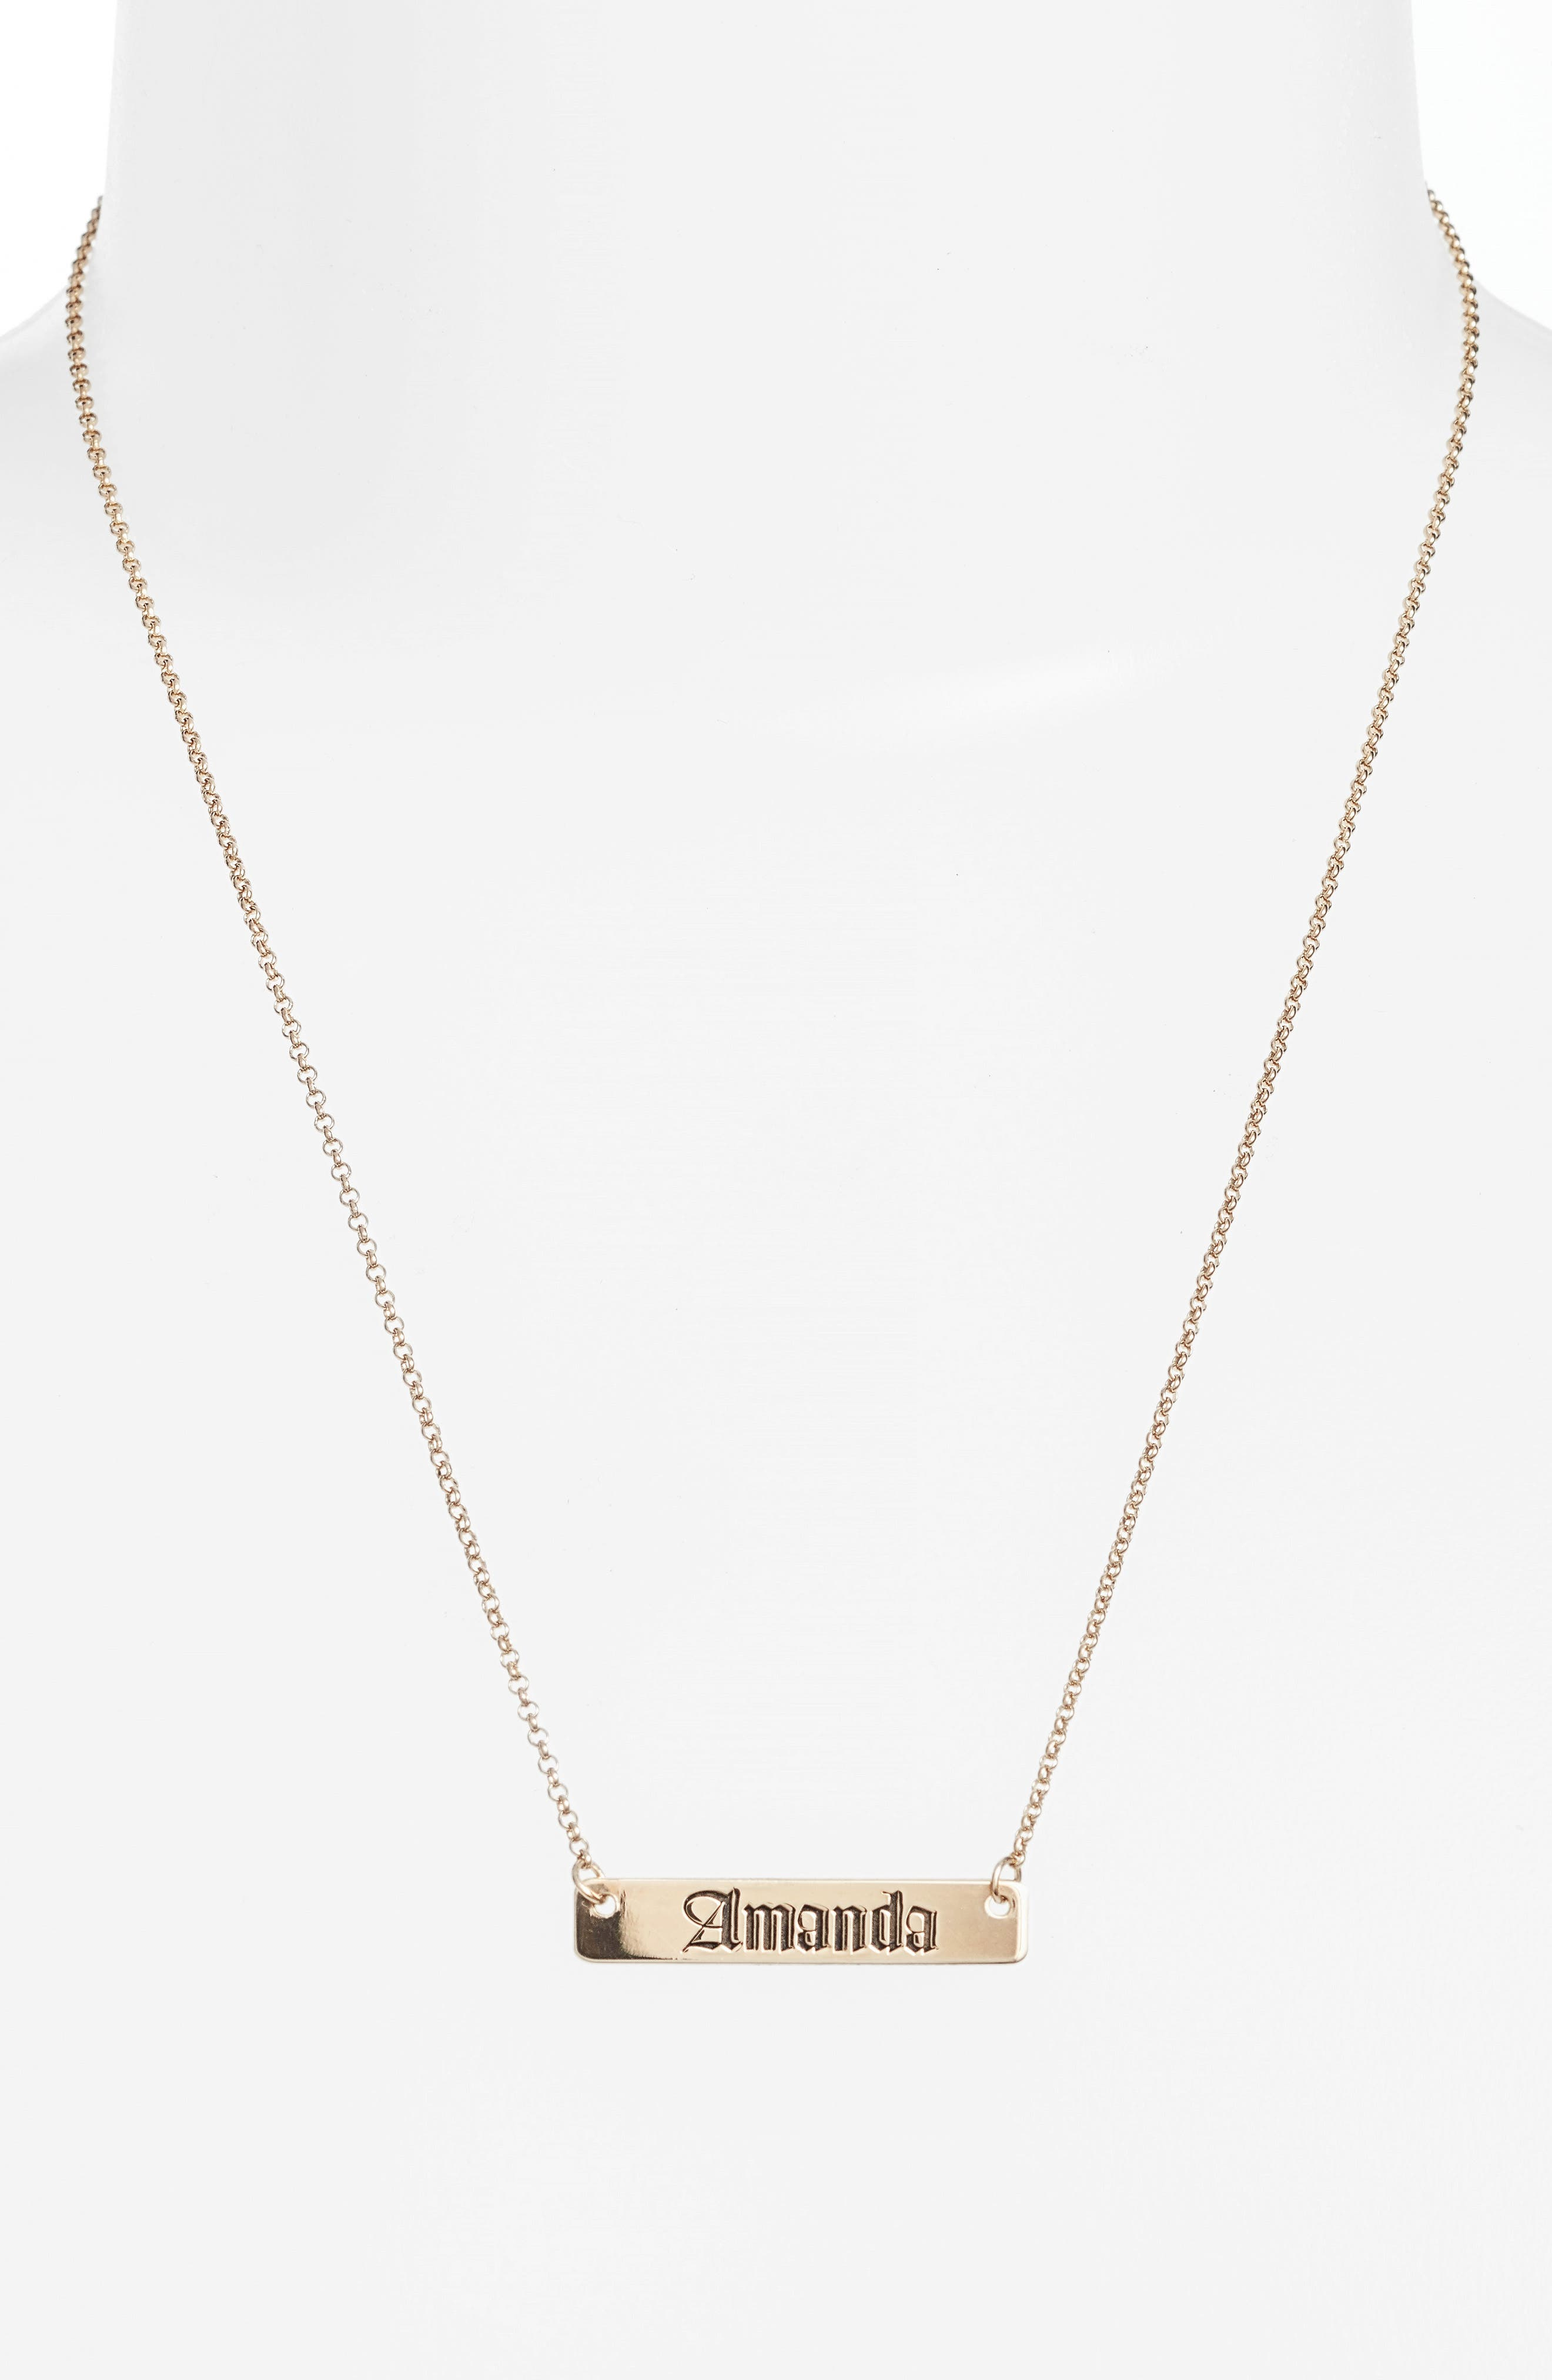 Personalized English Font Bar Necklace,                             Alternate thumbnail 2, color,                             SILVER